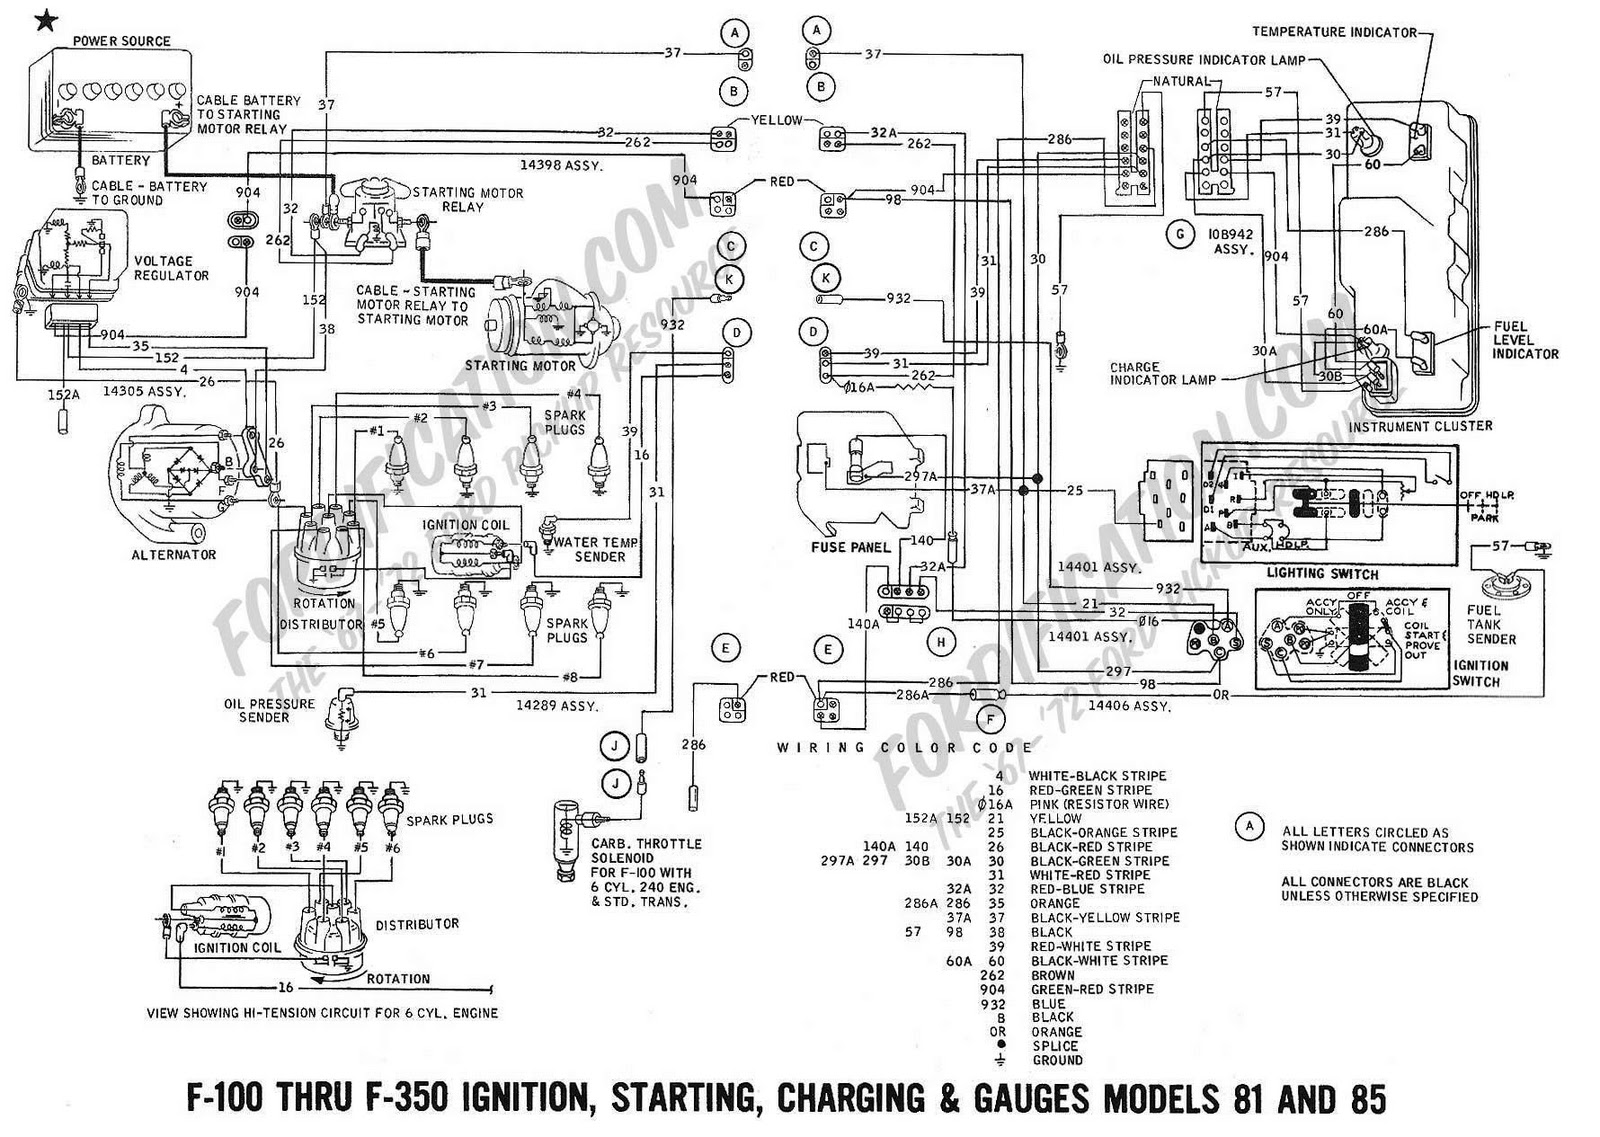 ford truck wiring harness wiring diagram all data 1966 Ford F100 1968 ford f100 wiring harness wiring diagrams hubs ford ignition system diagram 1969 ford truck wiring